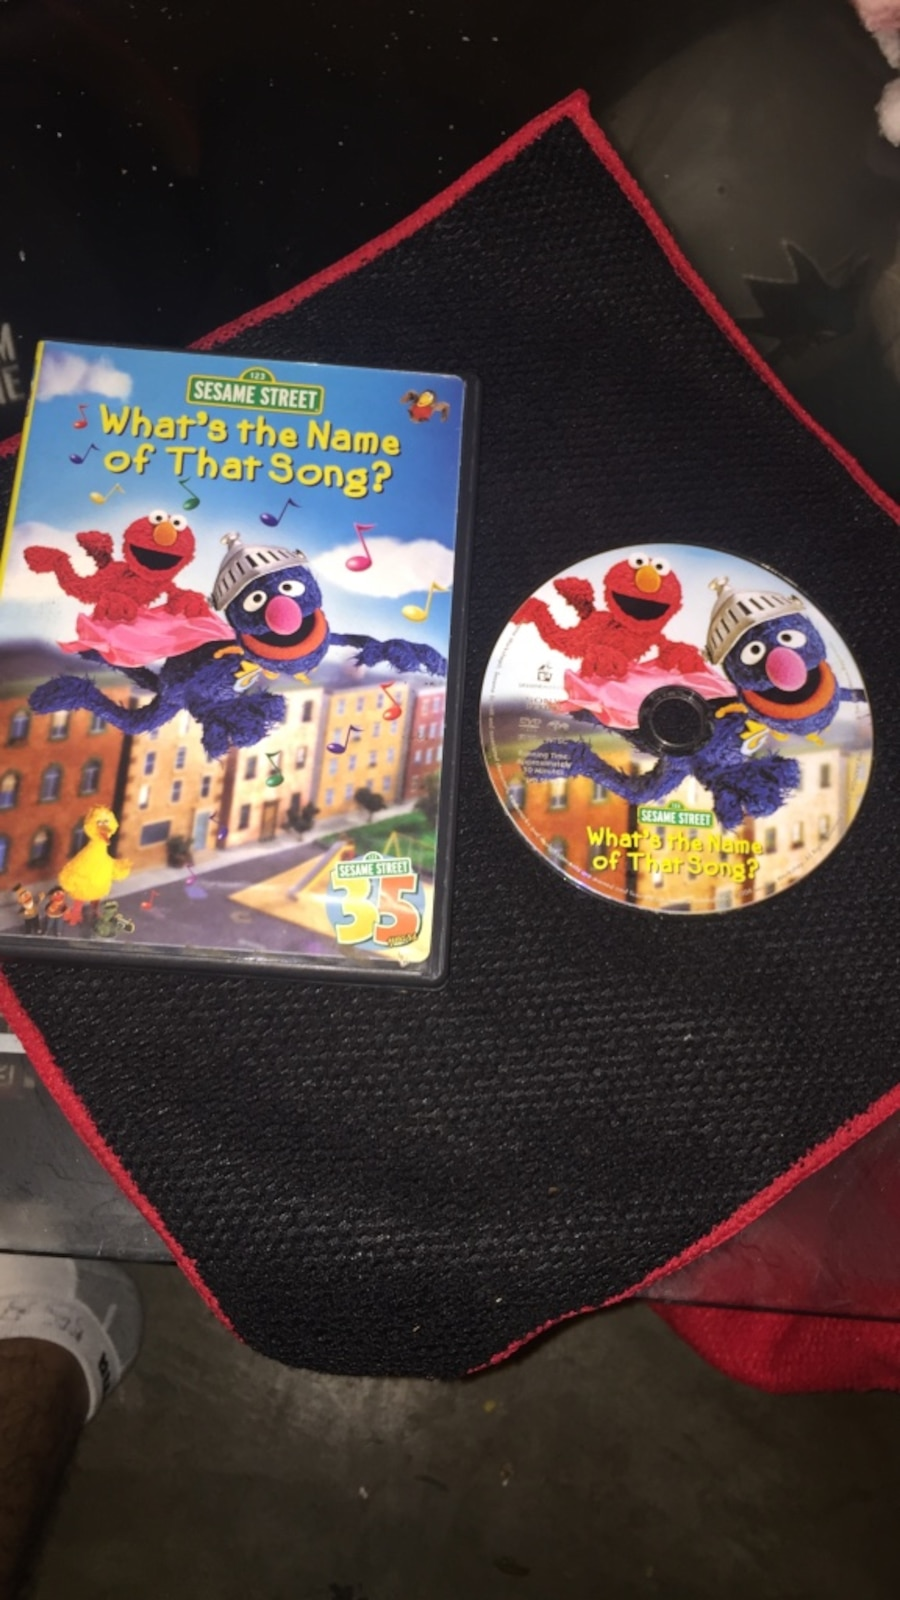 Sesame street what's the name of the song DVd in Salida ...